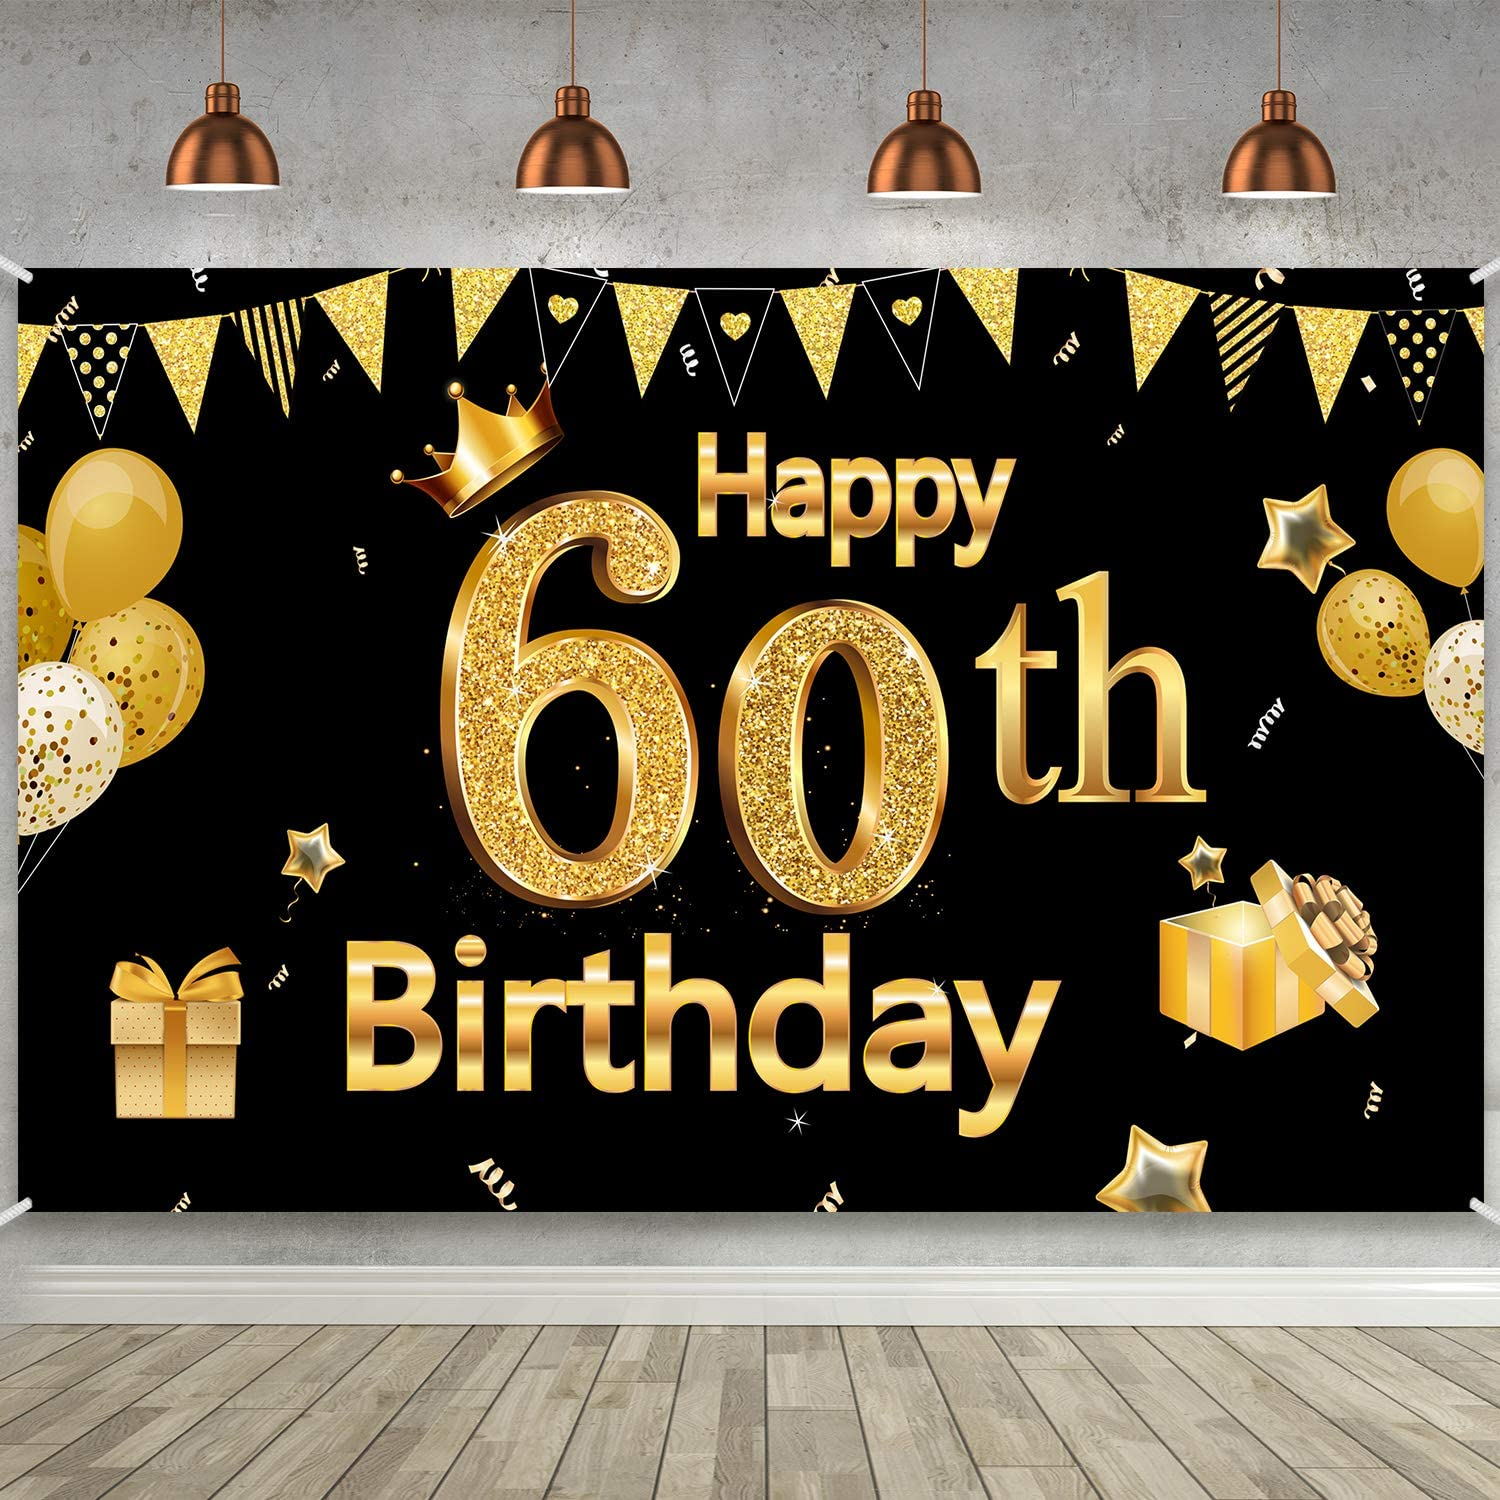 Amazon.com: 60th Birthday Party Decoration, Extra Large Black Gold Sign  Poster 60th Birthday Party Supplies, 60th Anniversary Backdrop Banner Photo  Booth Backdrop Background Banner, 72.8 x 43.3 Inch: Toys & Games